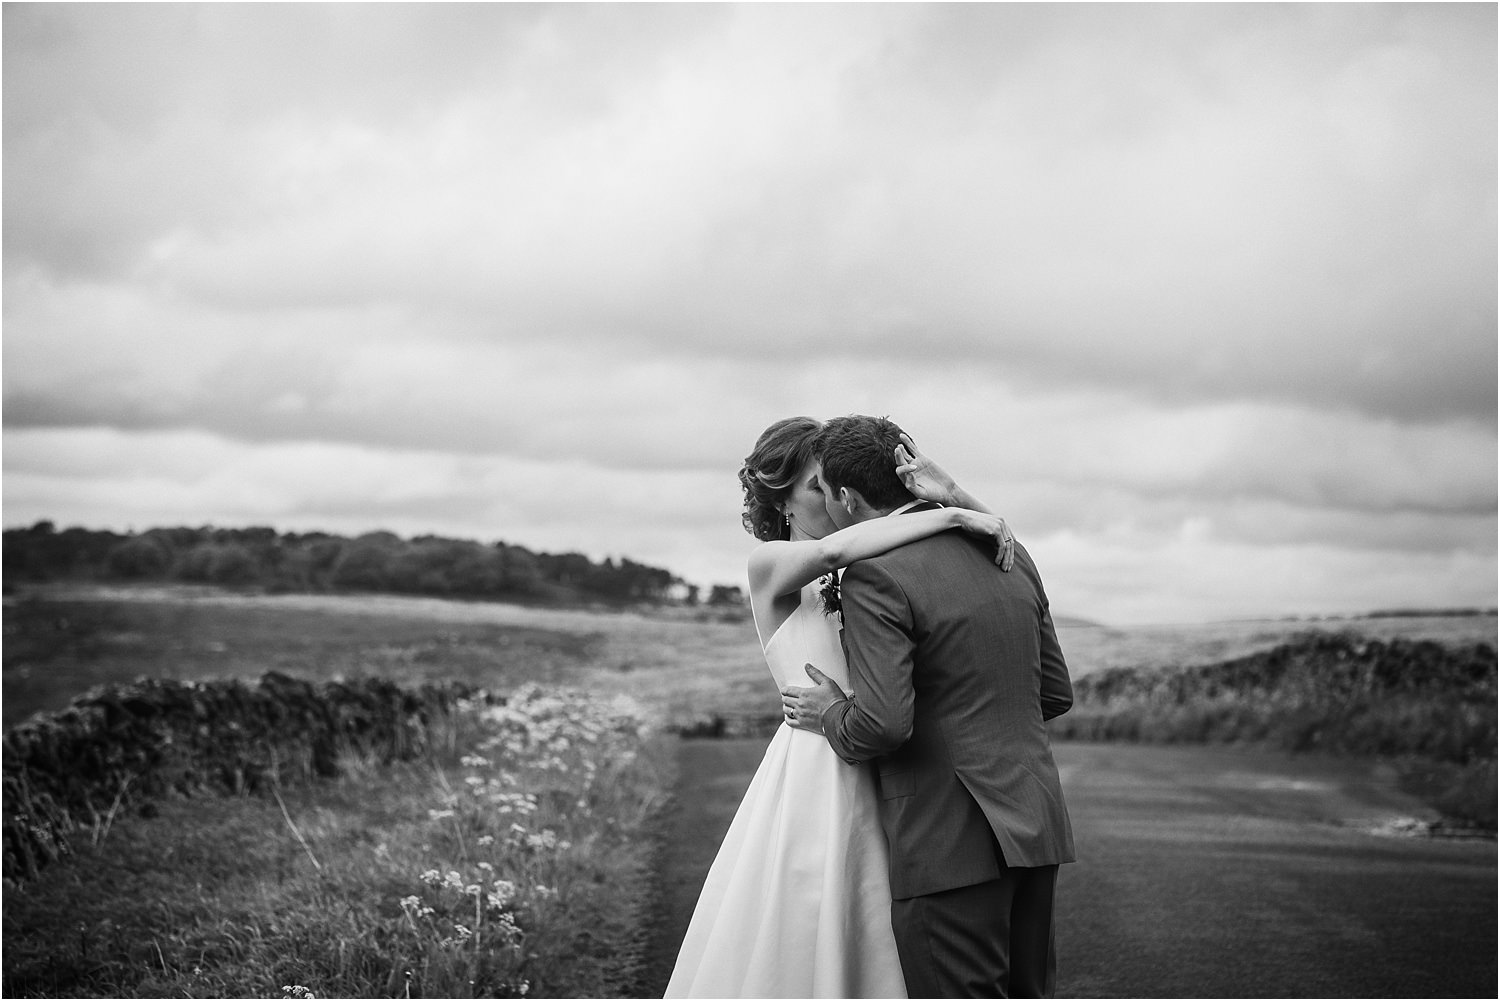 A passionate embrace for bride and groom after their wedding in the Trough of Bowland, Lancashire